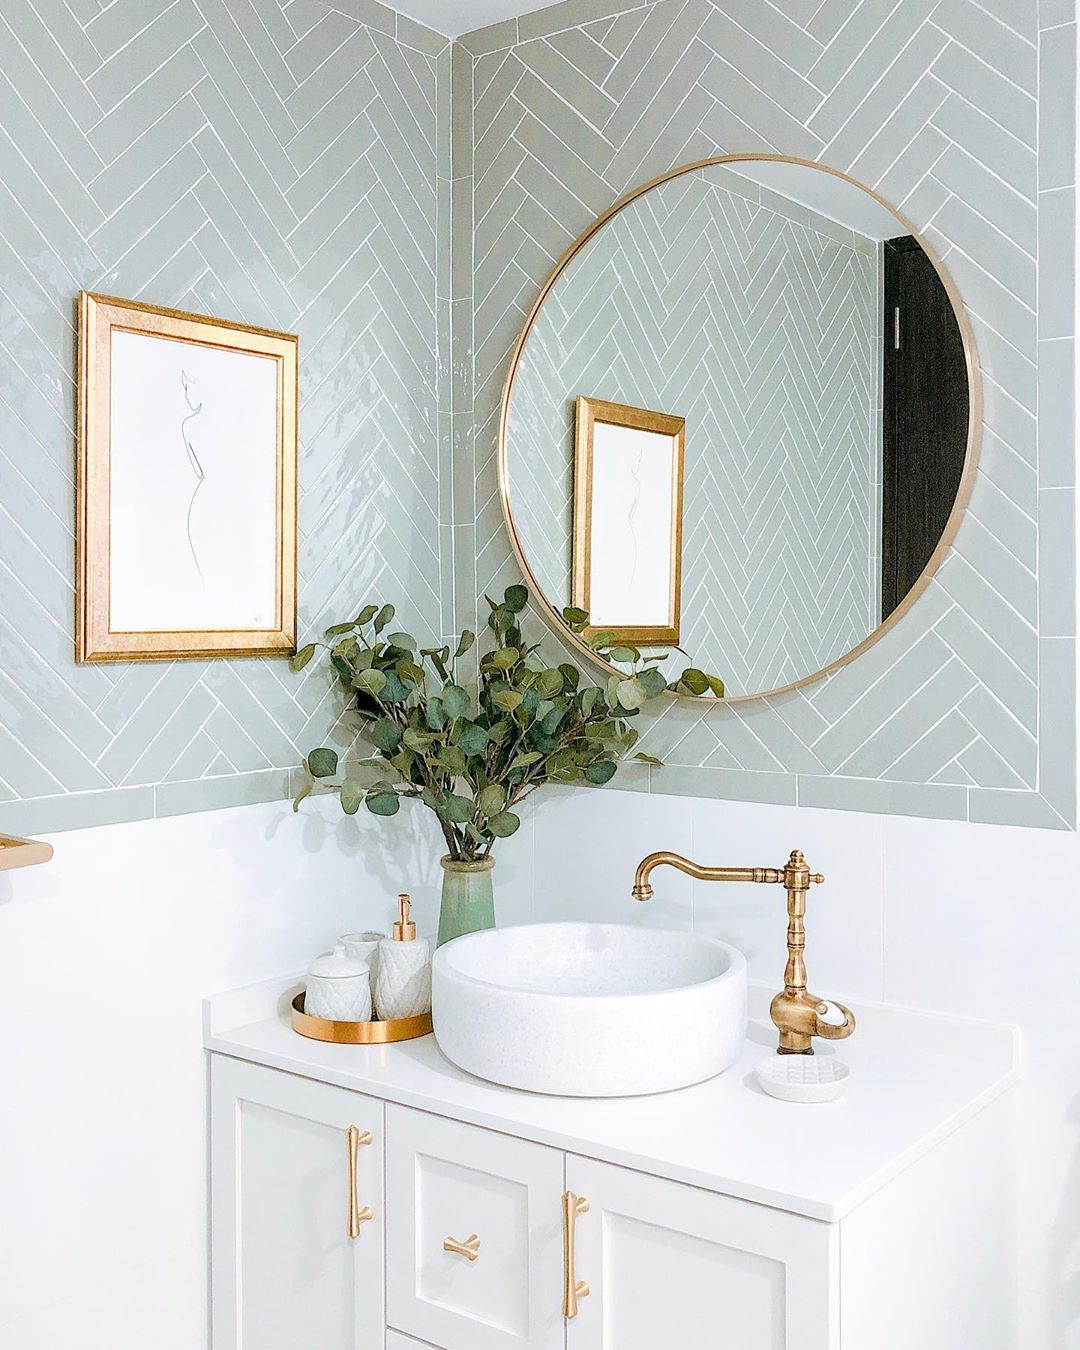 """Jade & Anthony on Instagram: """"Swipe right to see how we transformed this bathroom from renovation to styling! 🛁 - The final outcome of any space involves many behind the…"""""""